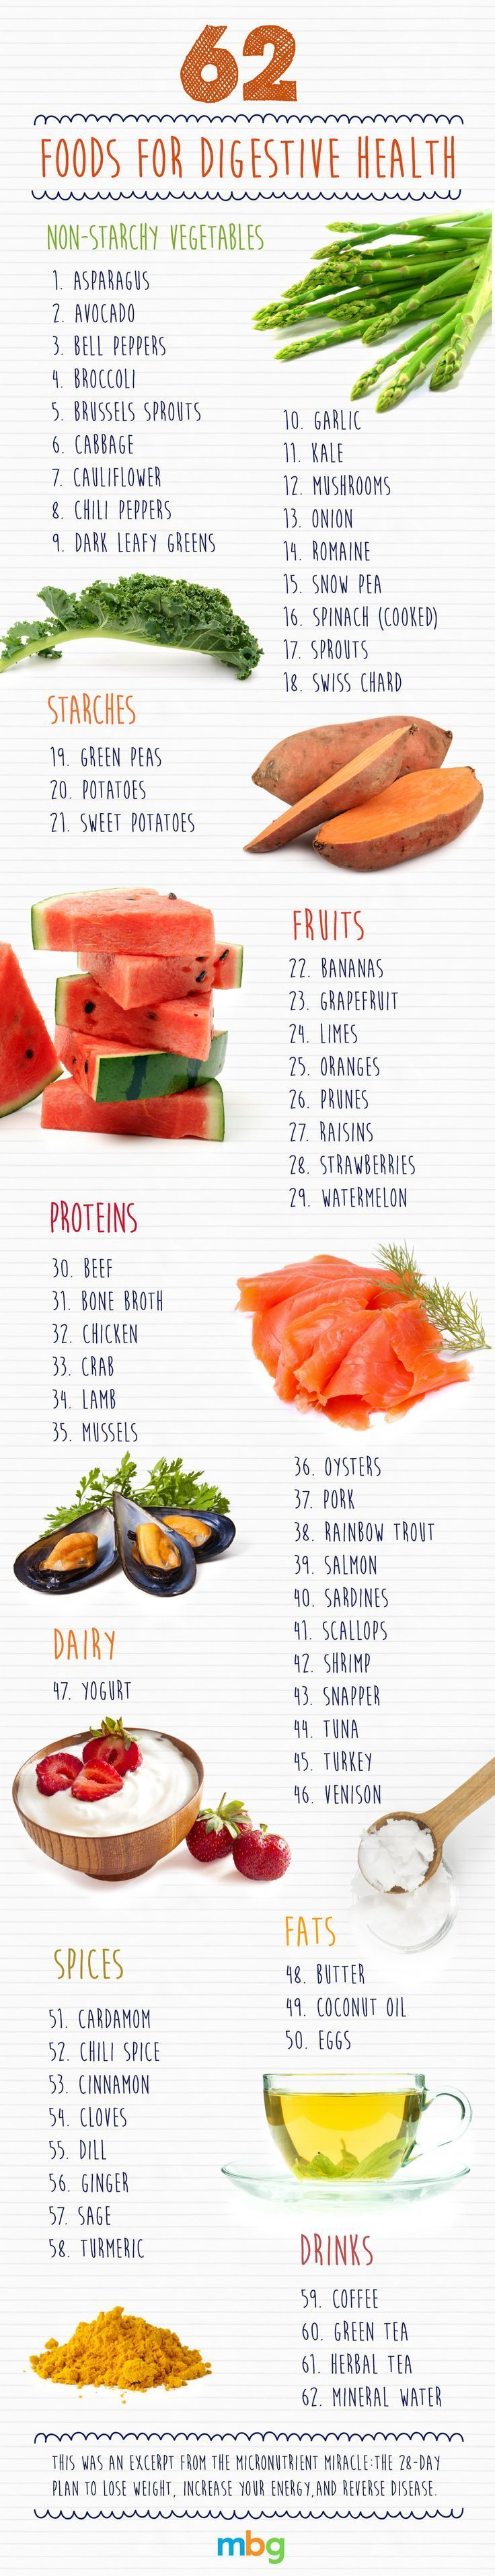 "62 Foods For Digestive Health - <a href="""" rel=""nofollow"" target=""_blank""></a>"